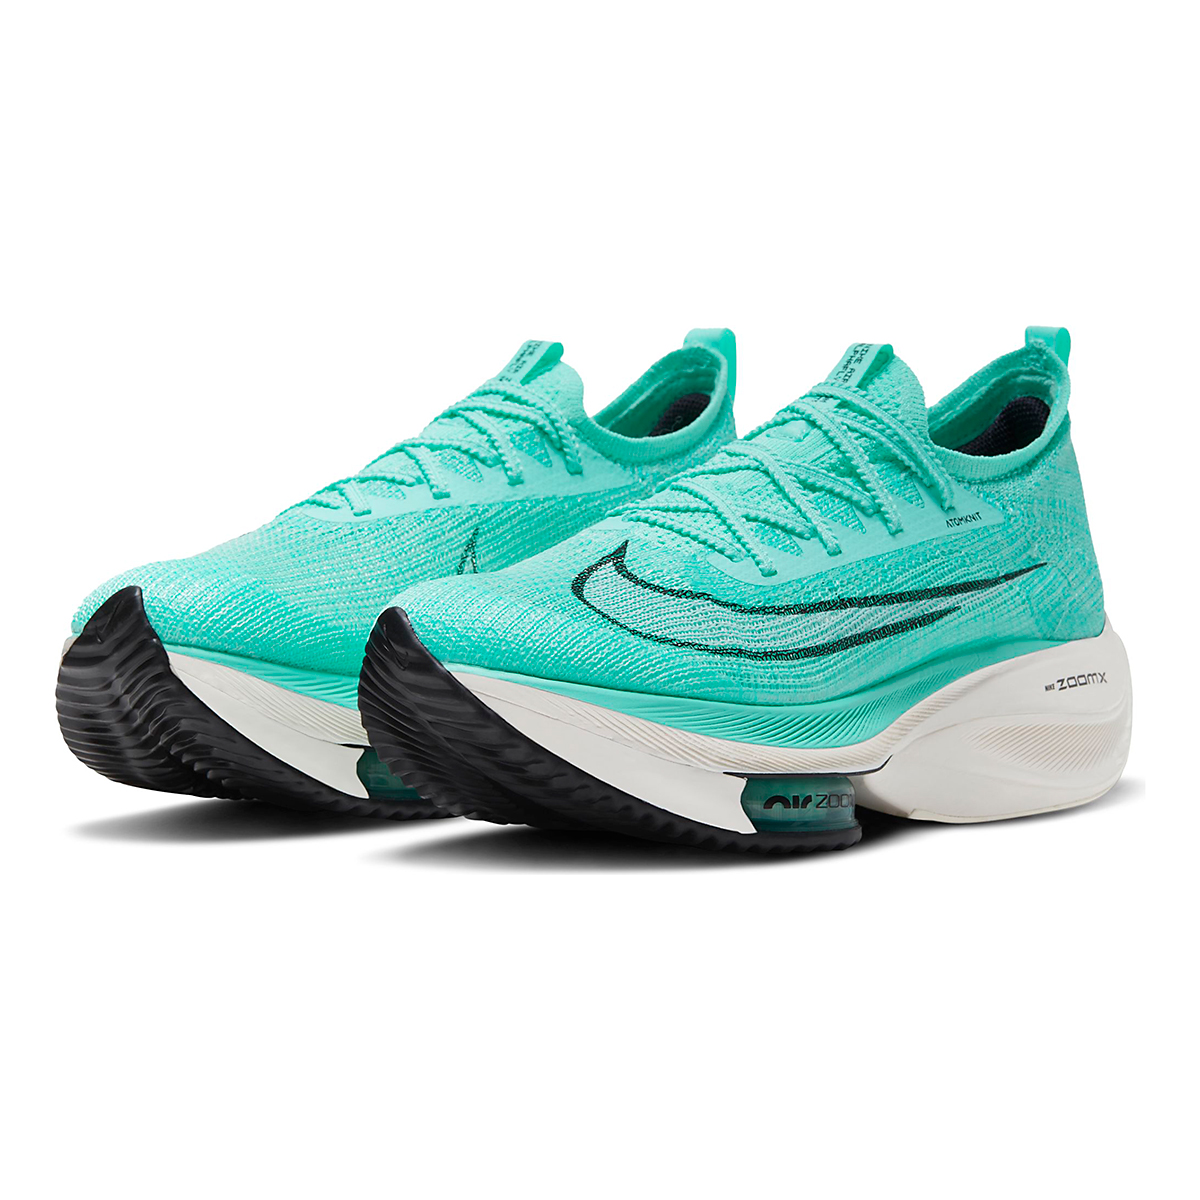 Men's Nike Air Zoom Alphafly Next% Running Shoe - Color: Hyper Turq/White-Black-Oracle Aqua - Size: 6 - Width: Regular, Hyper Turq/White-Black-Oracle Aqua, large, image 5